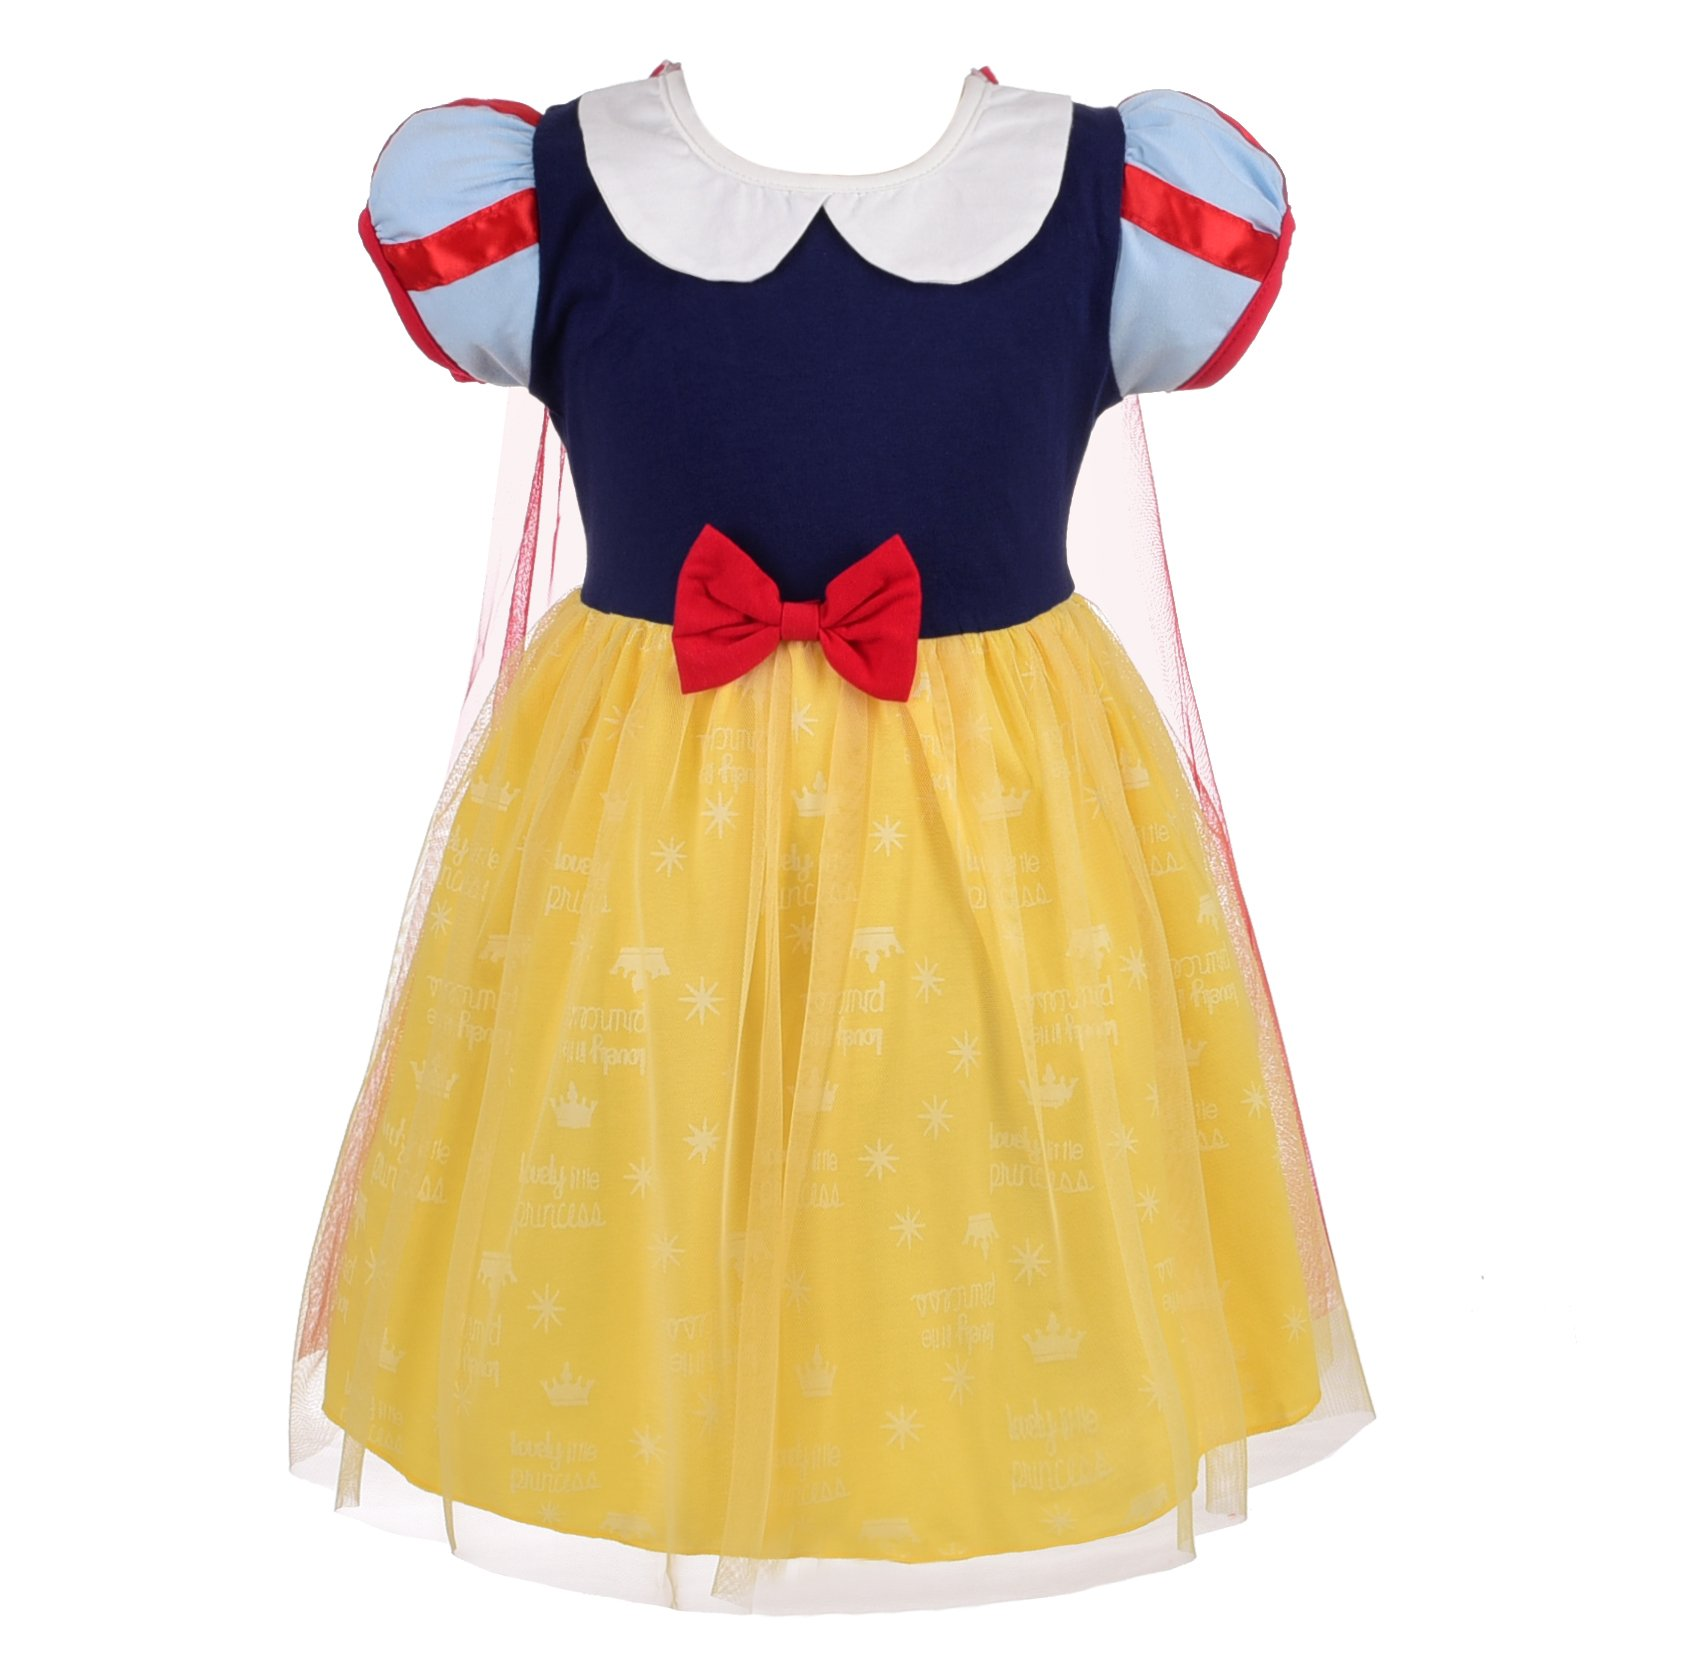 Dressy Daisy Princess Snow White Dress for Little Girls with Cape Halloween Fancy Party Costume Dress Size 5